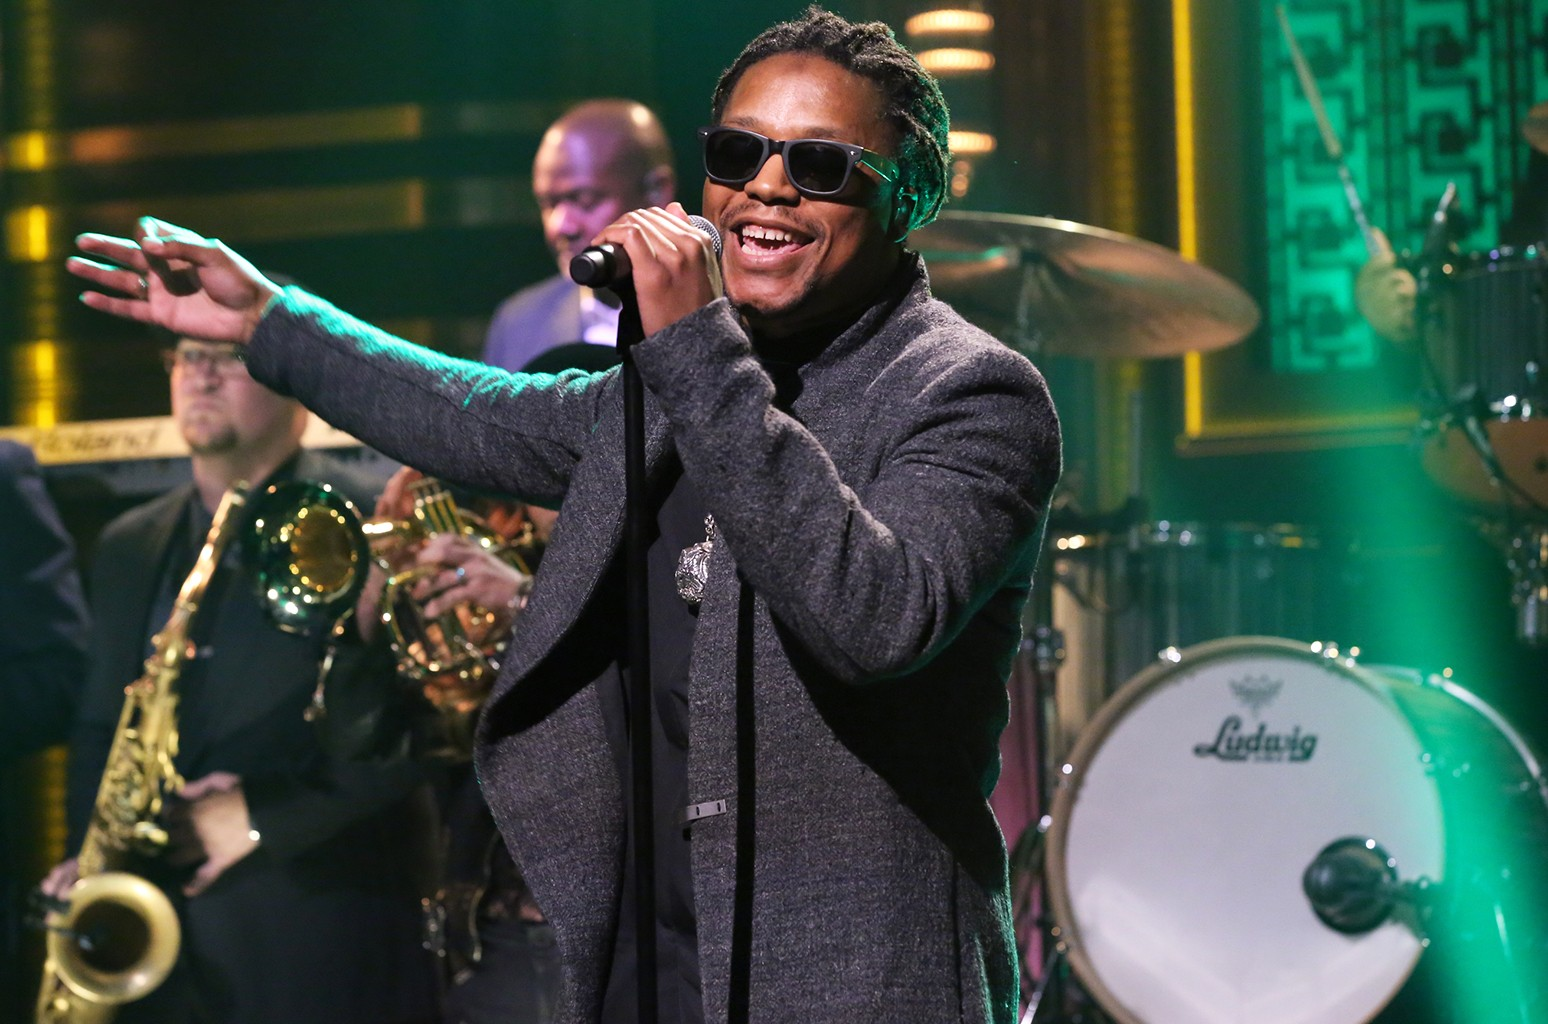 Lupe Fiasco performs in 2015